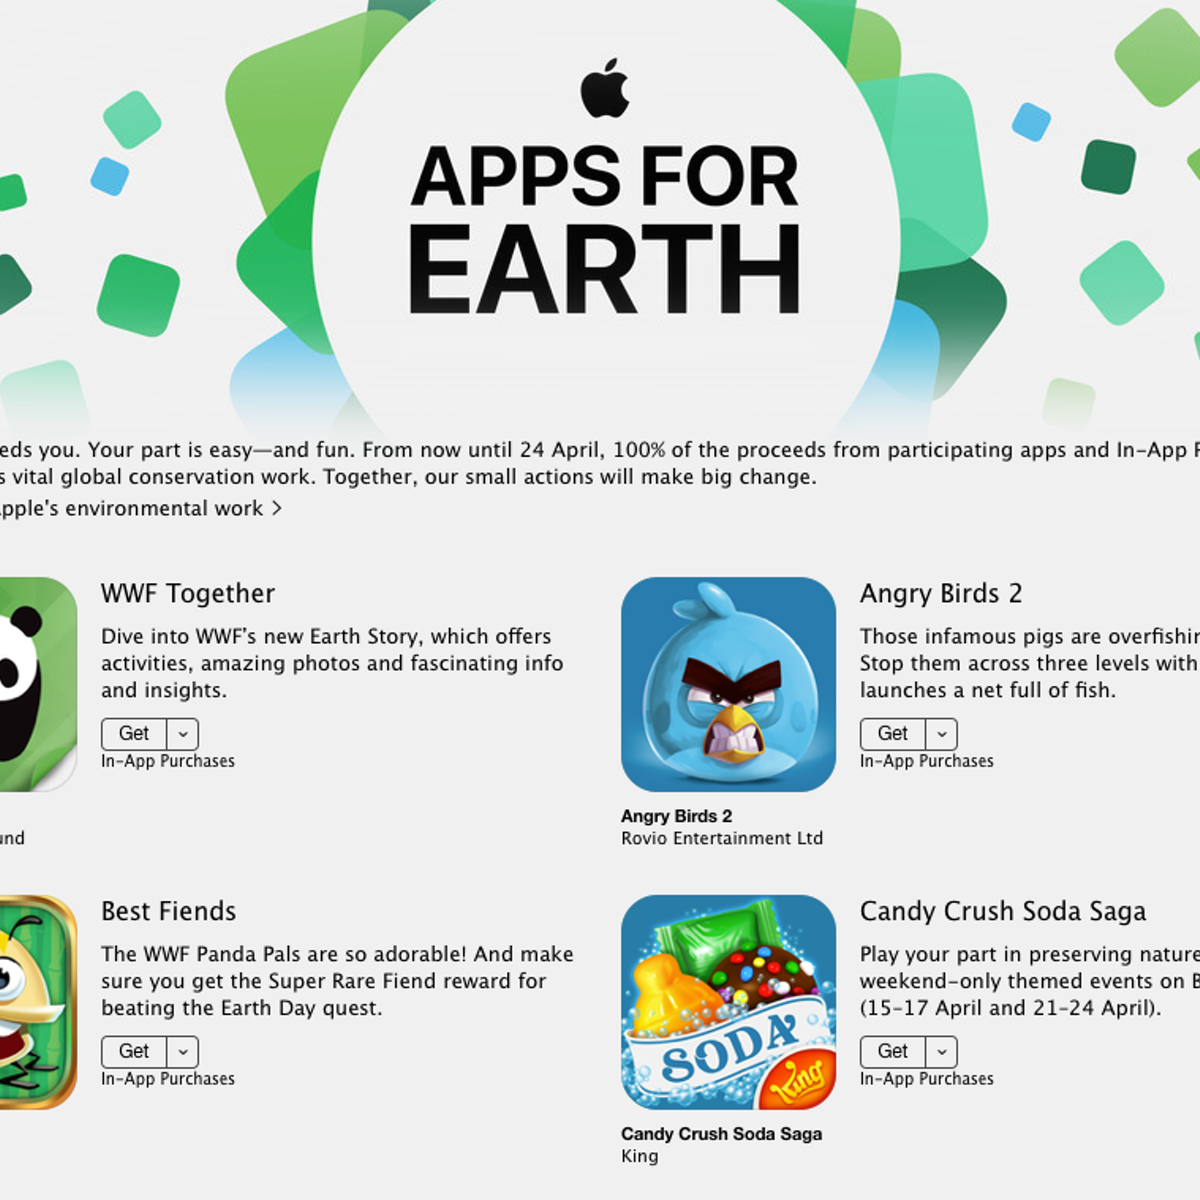 Apple's 'Apps for Earth' raise awareness – but that's not enough